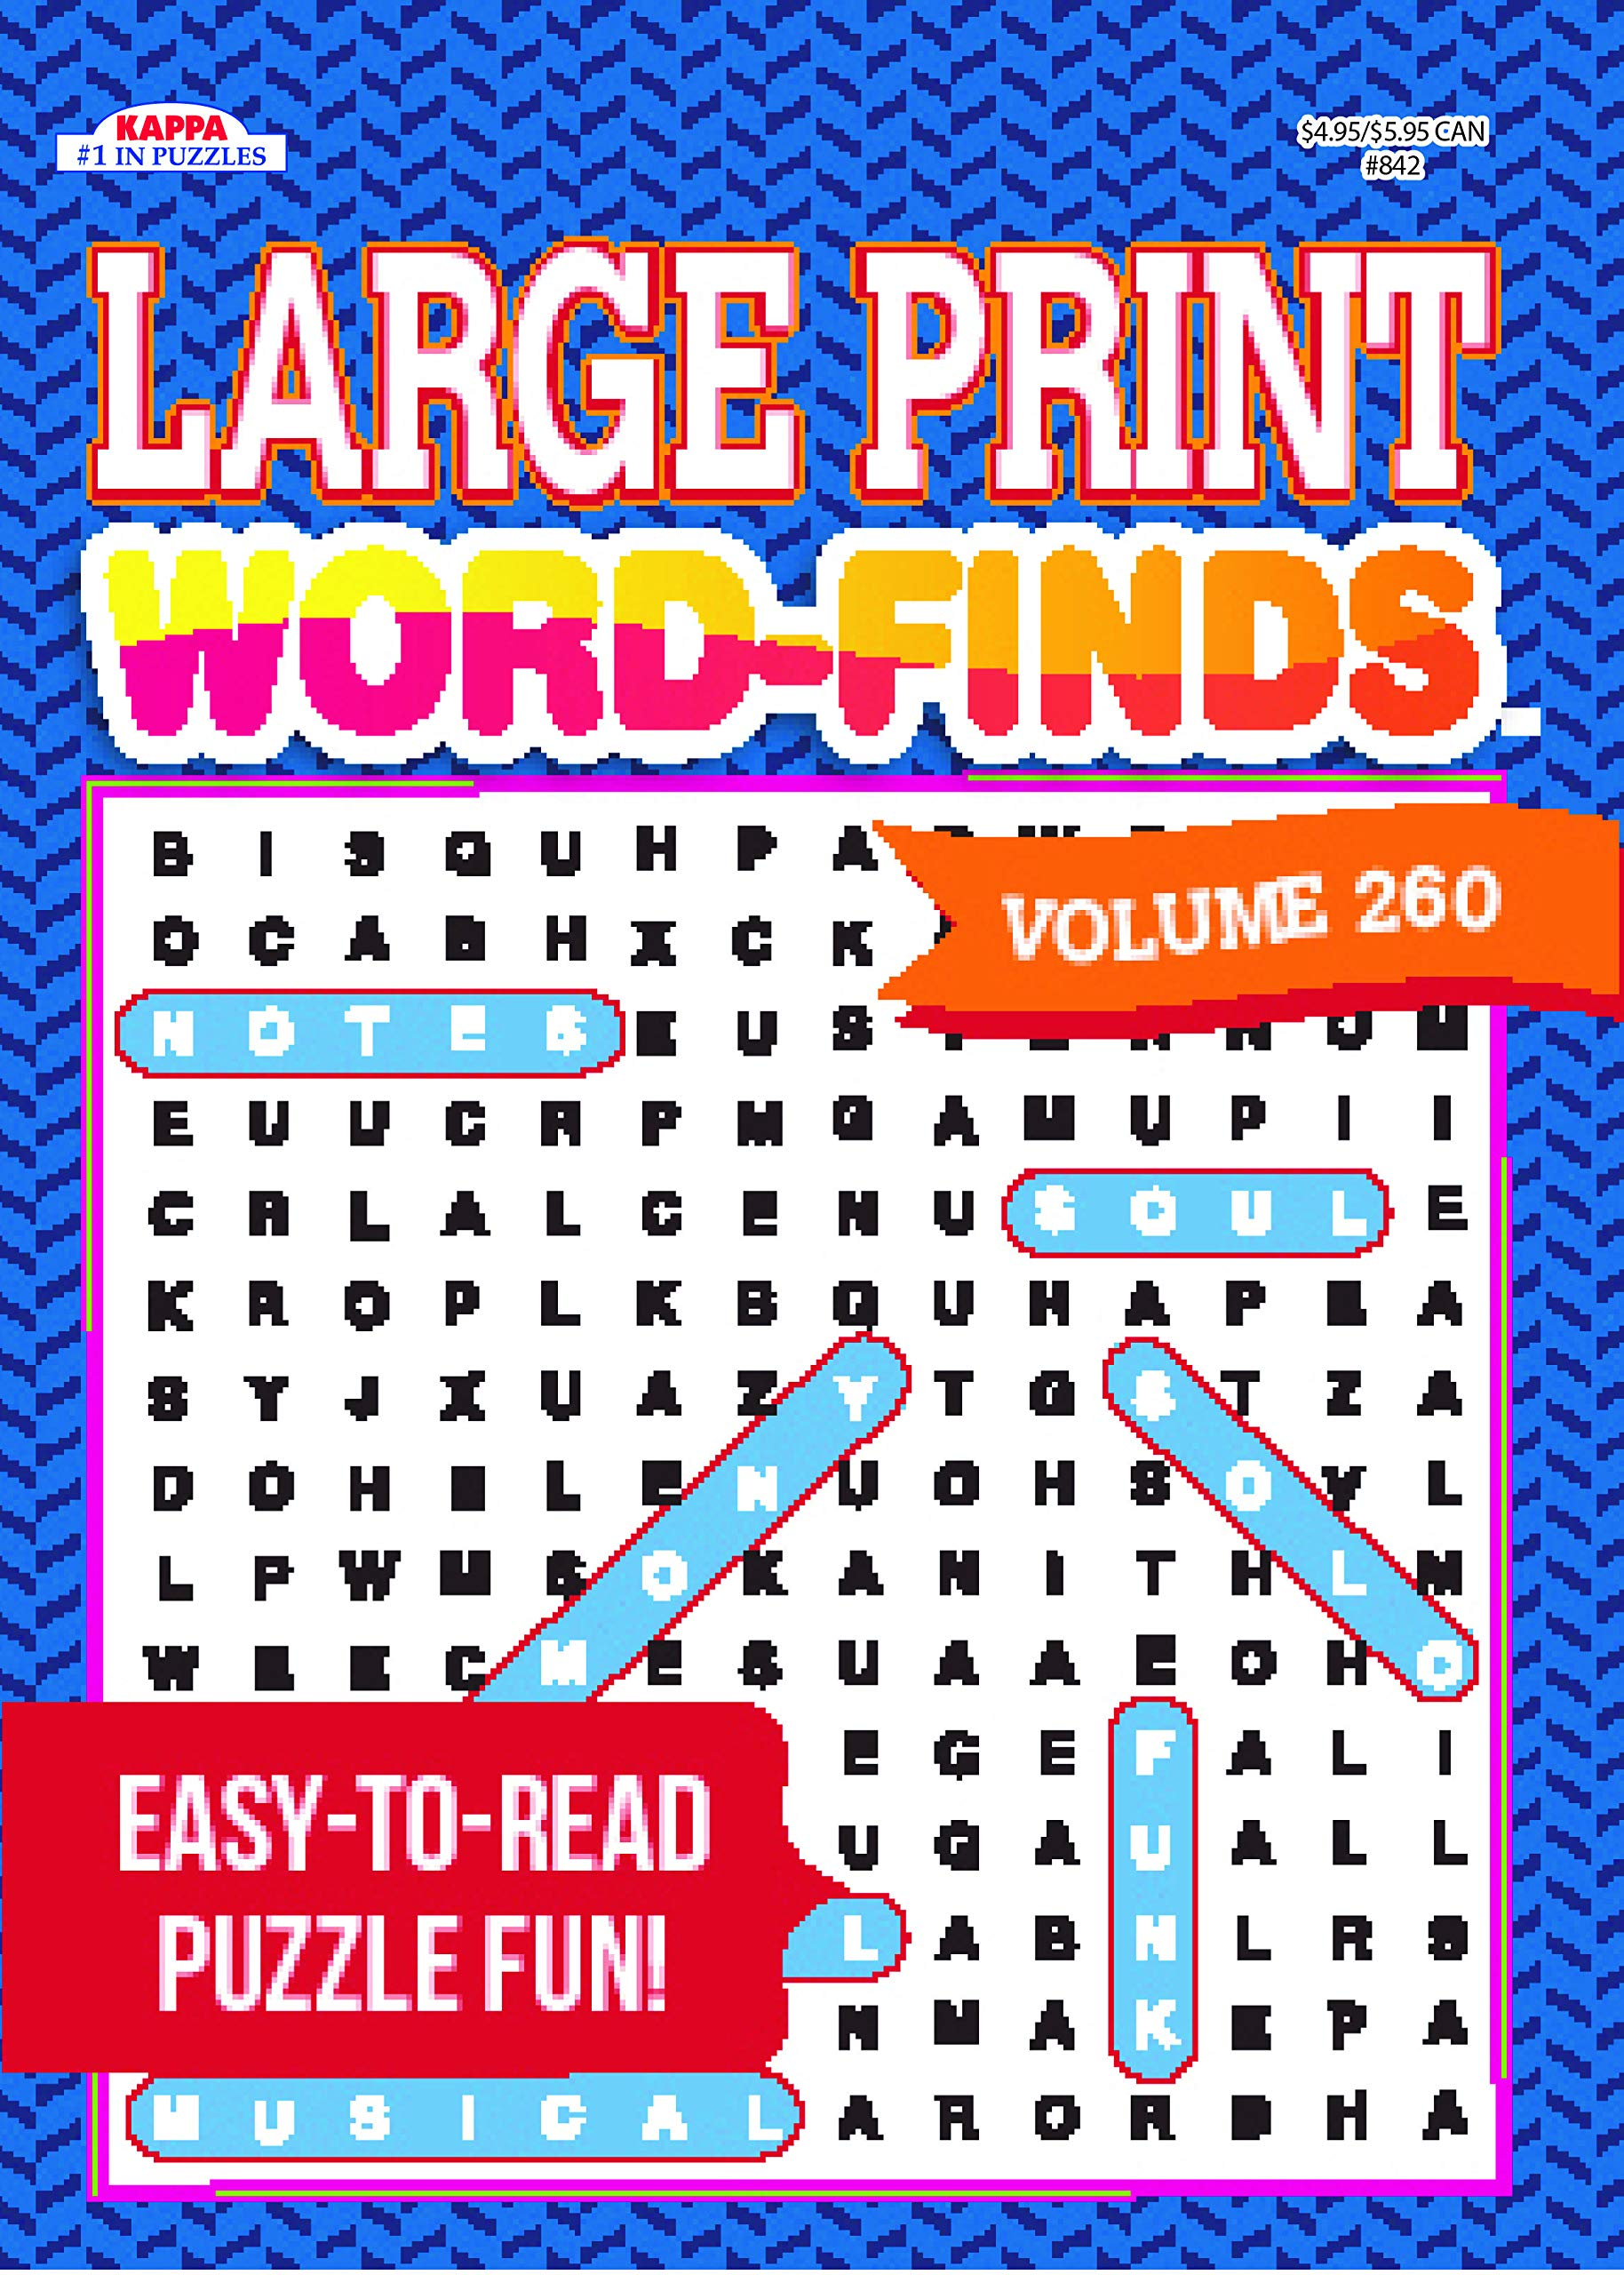 919ad904e8 Large Print Word-Finds Puzzle Book-Word Search Volume 260: Kappa ...